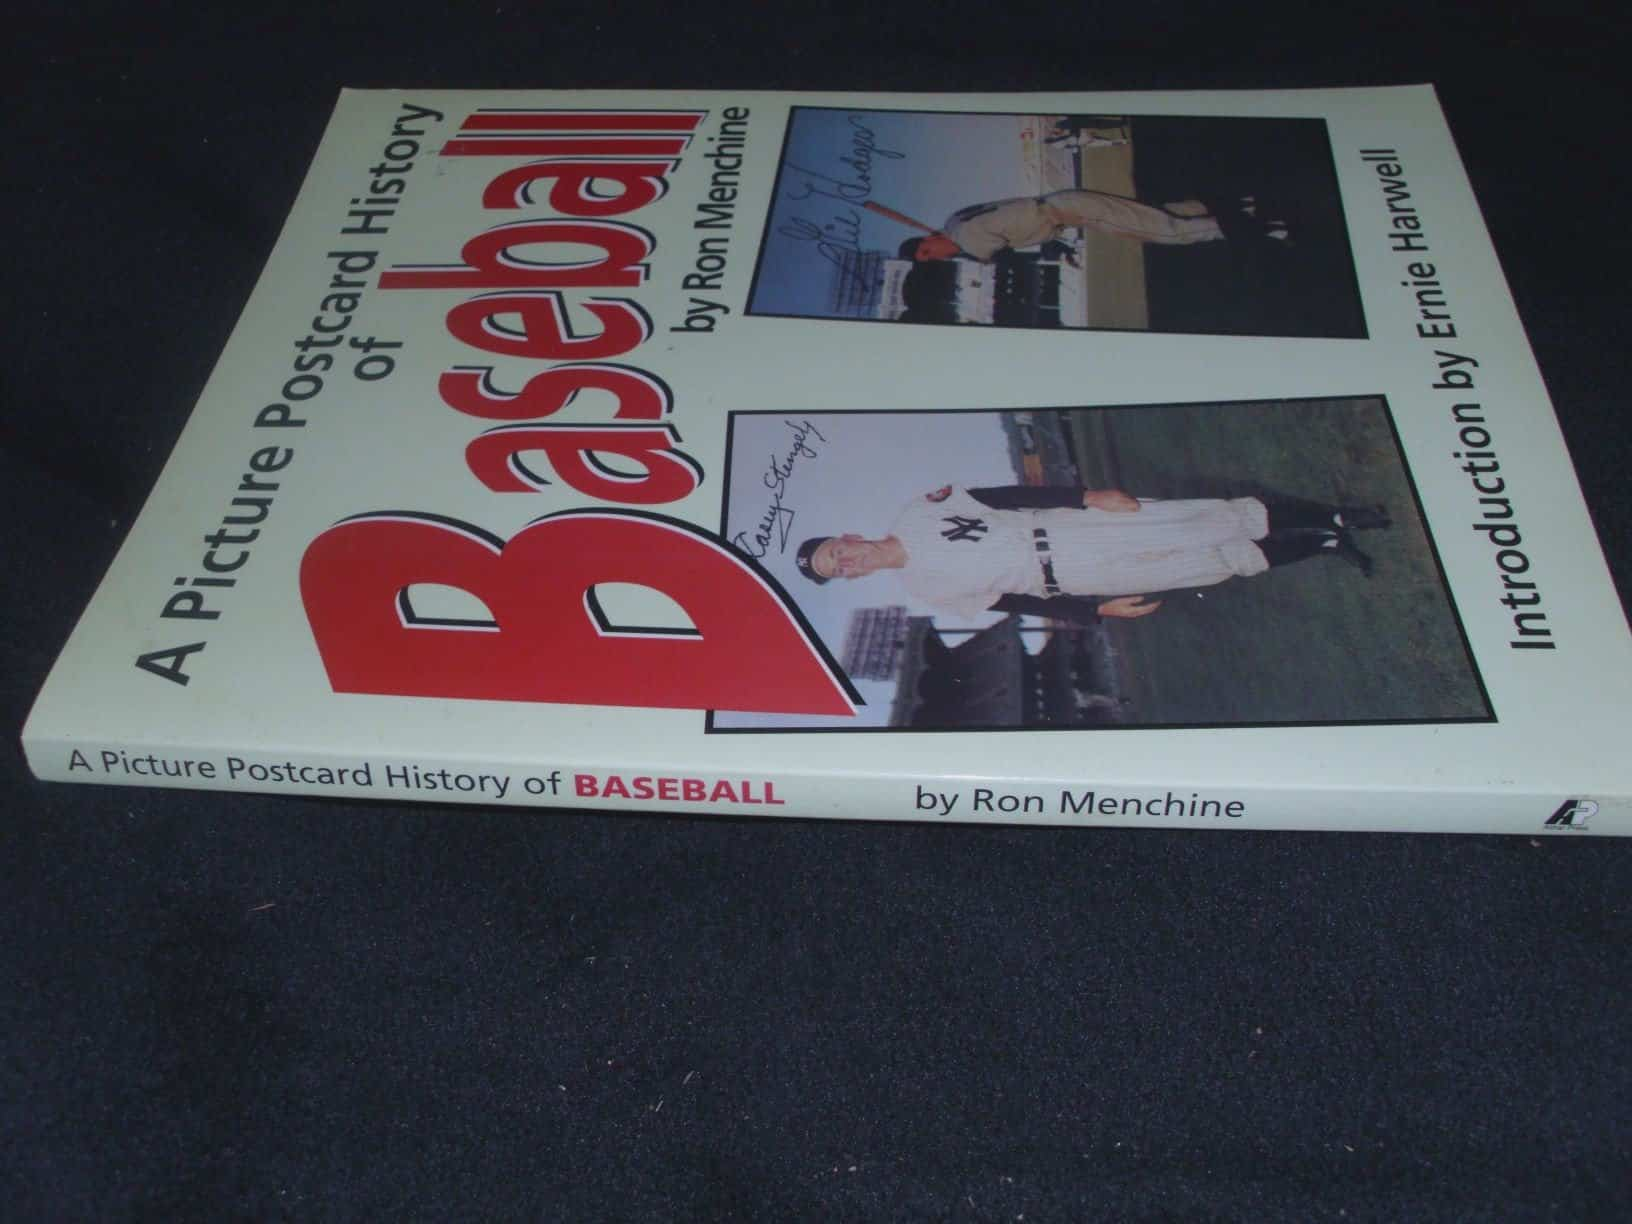 A Picture Postcard History of Baseball by Ron Menchine